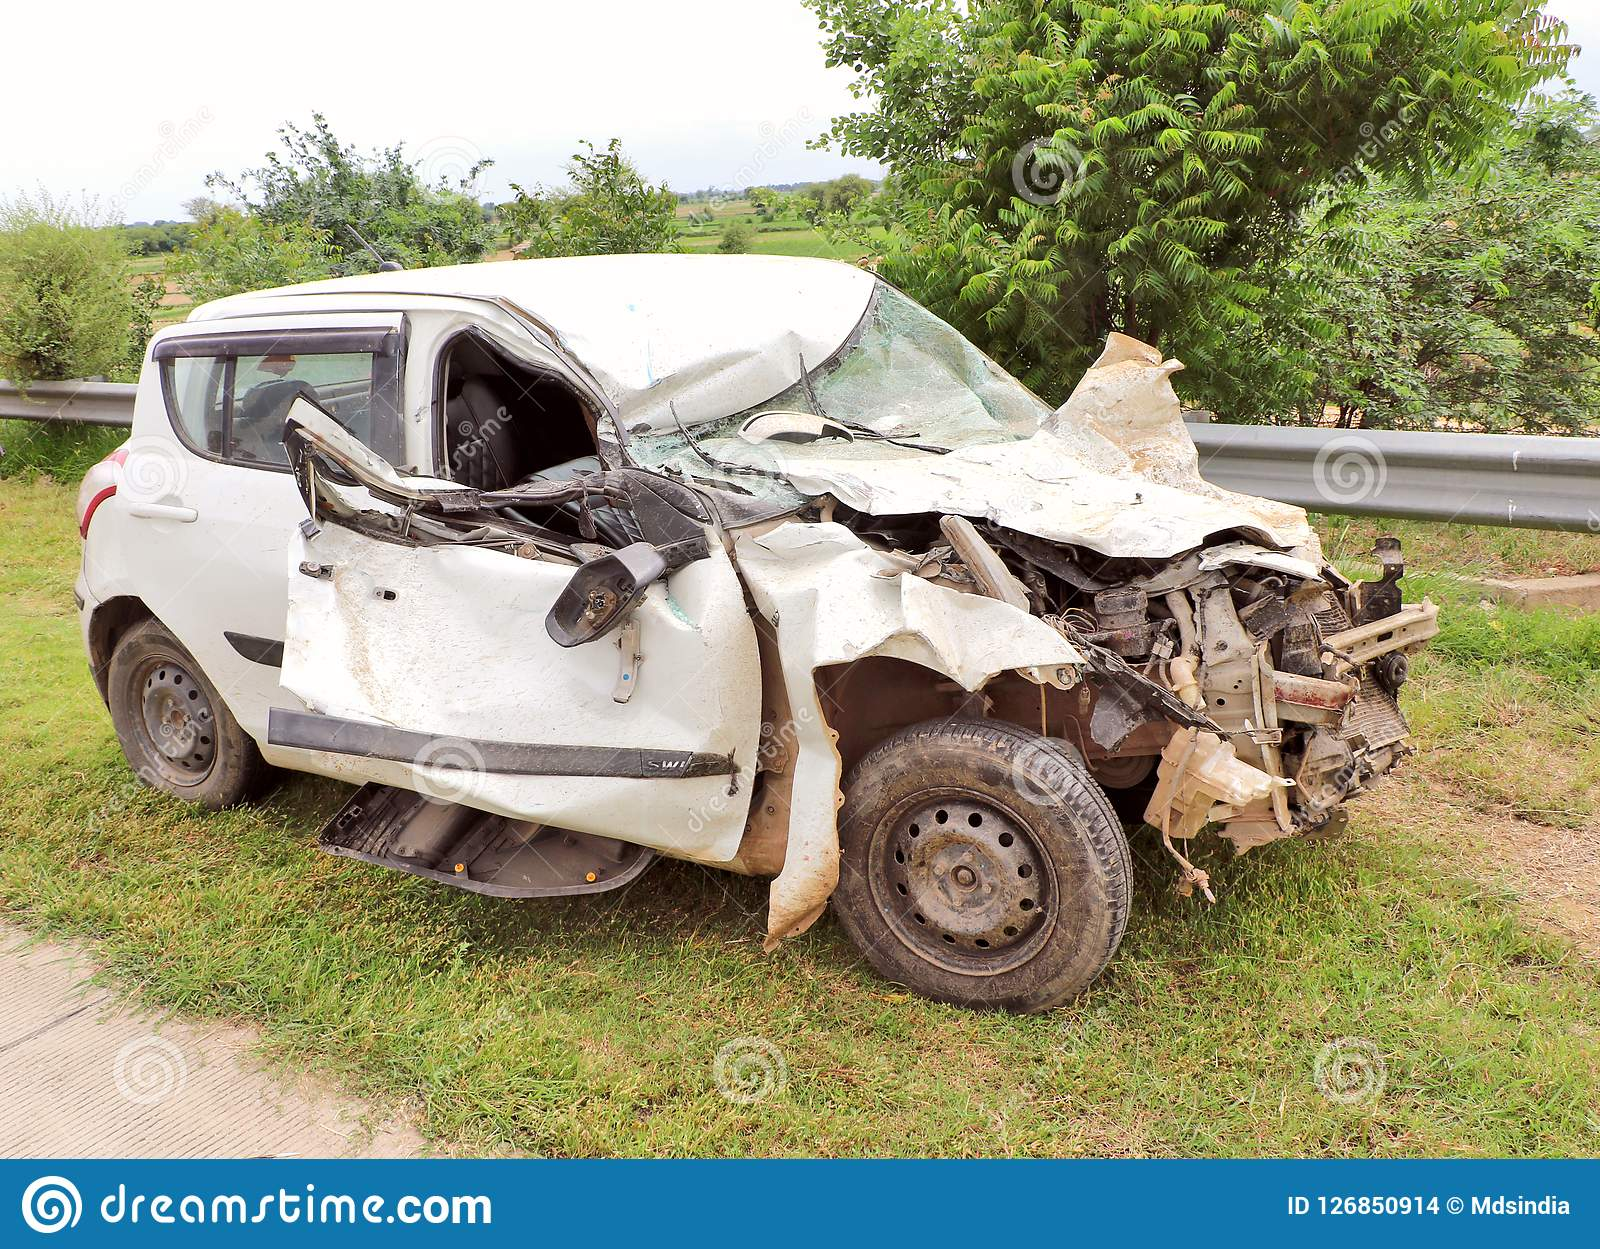 Terrible Car Accident Editorial Stock Image Image Of Danger 126850914